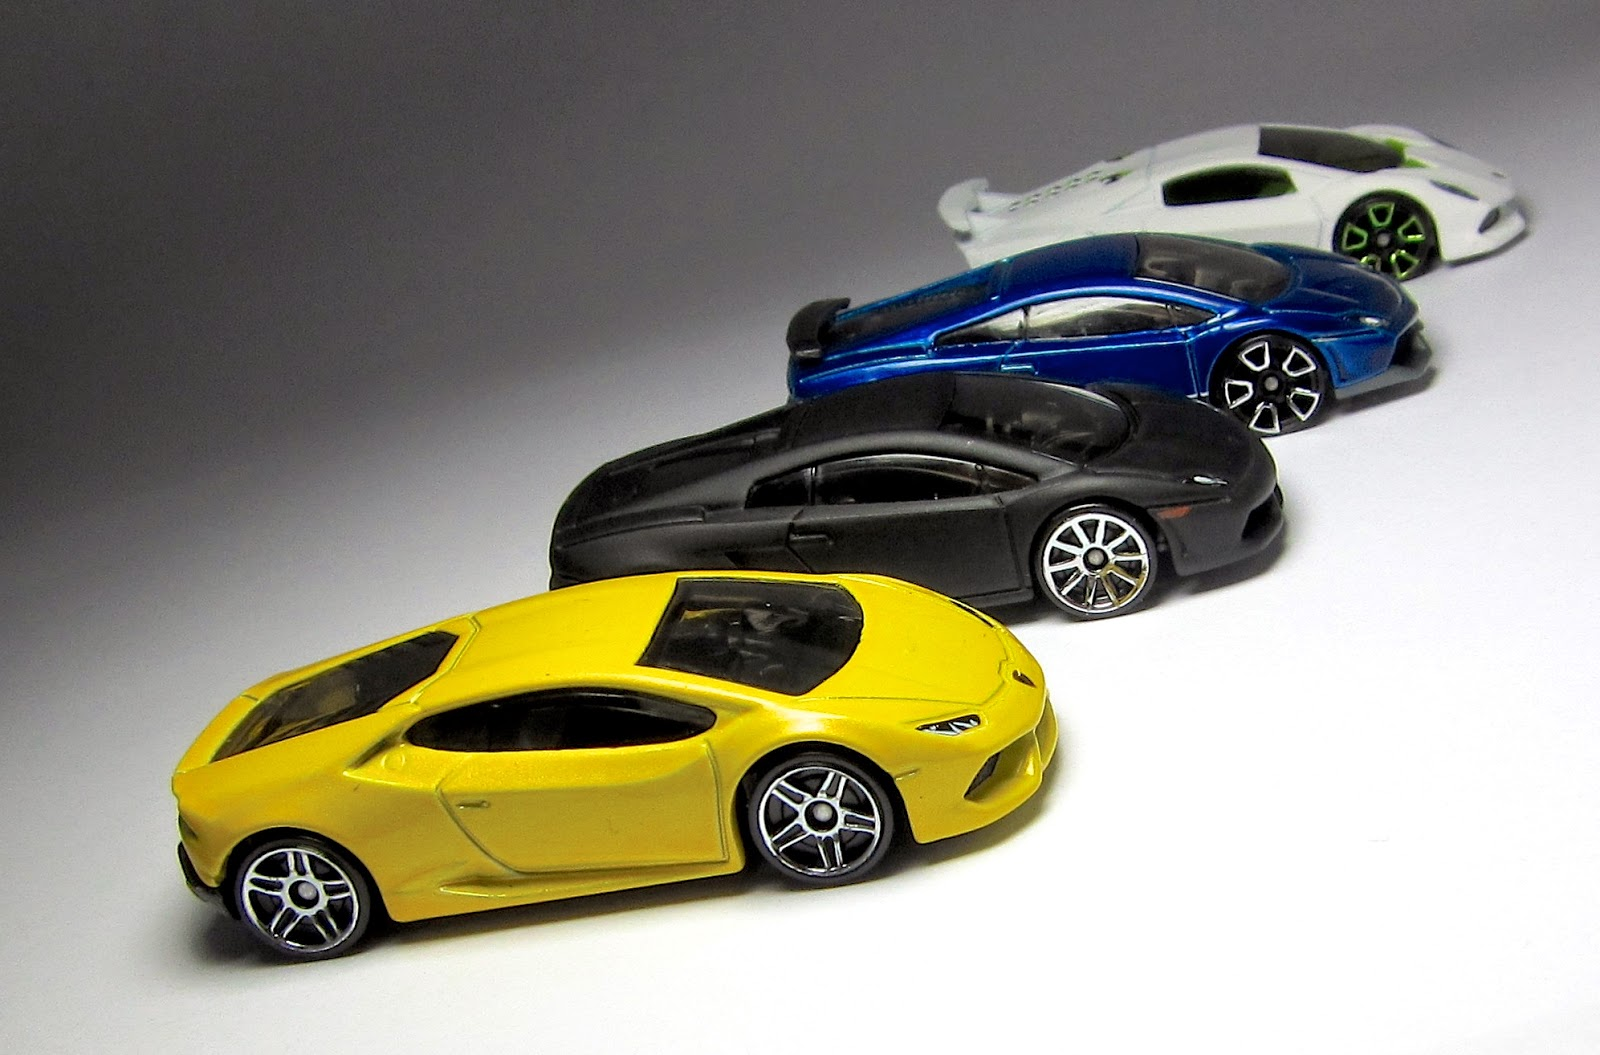 New Hot Wheels Cars For 2014 Autos Post